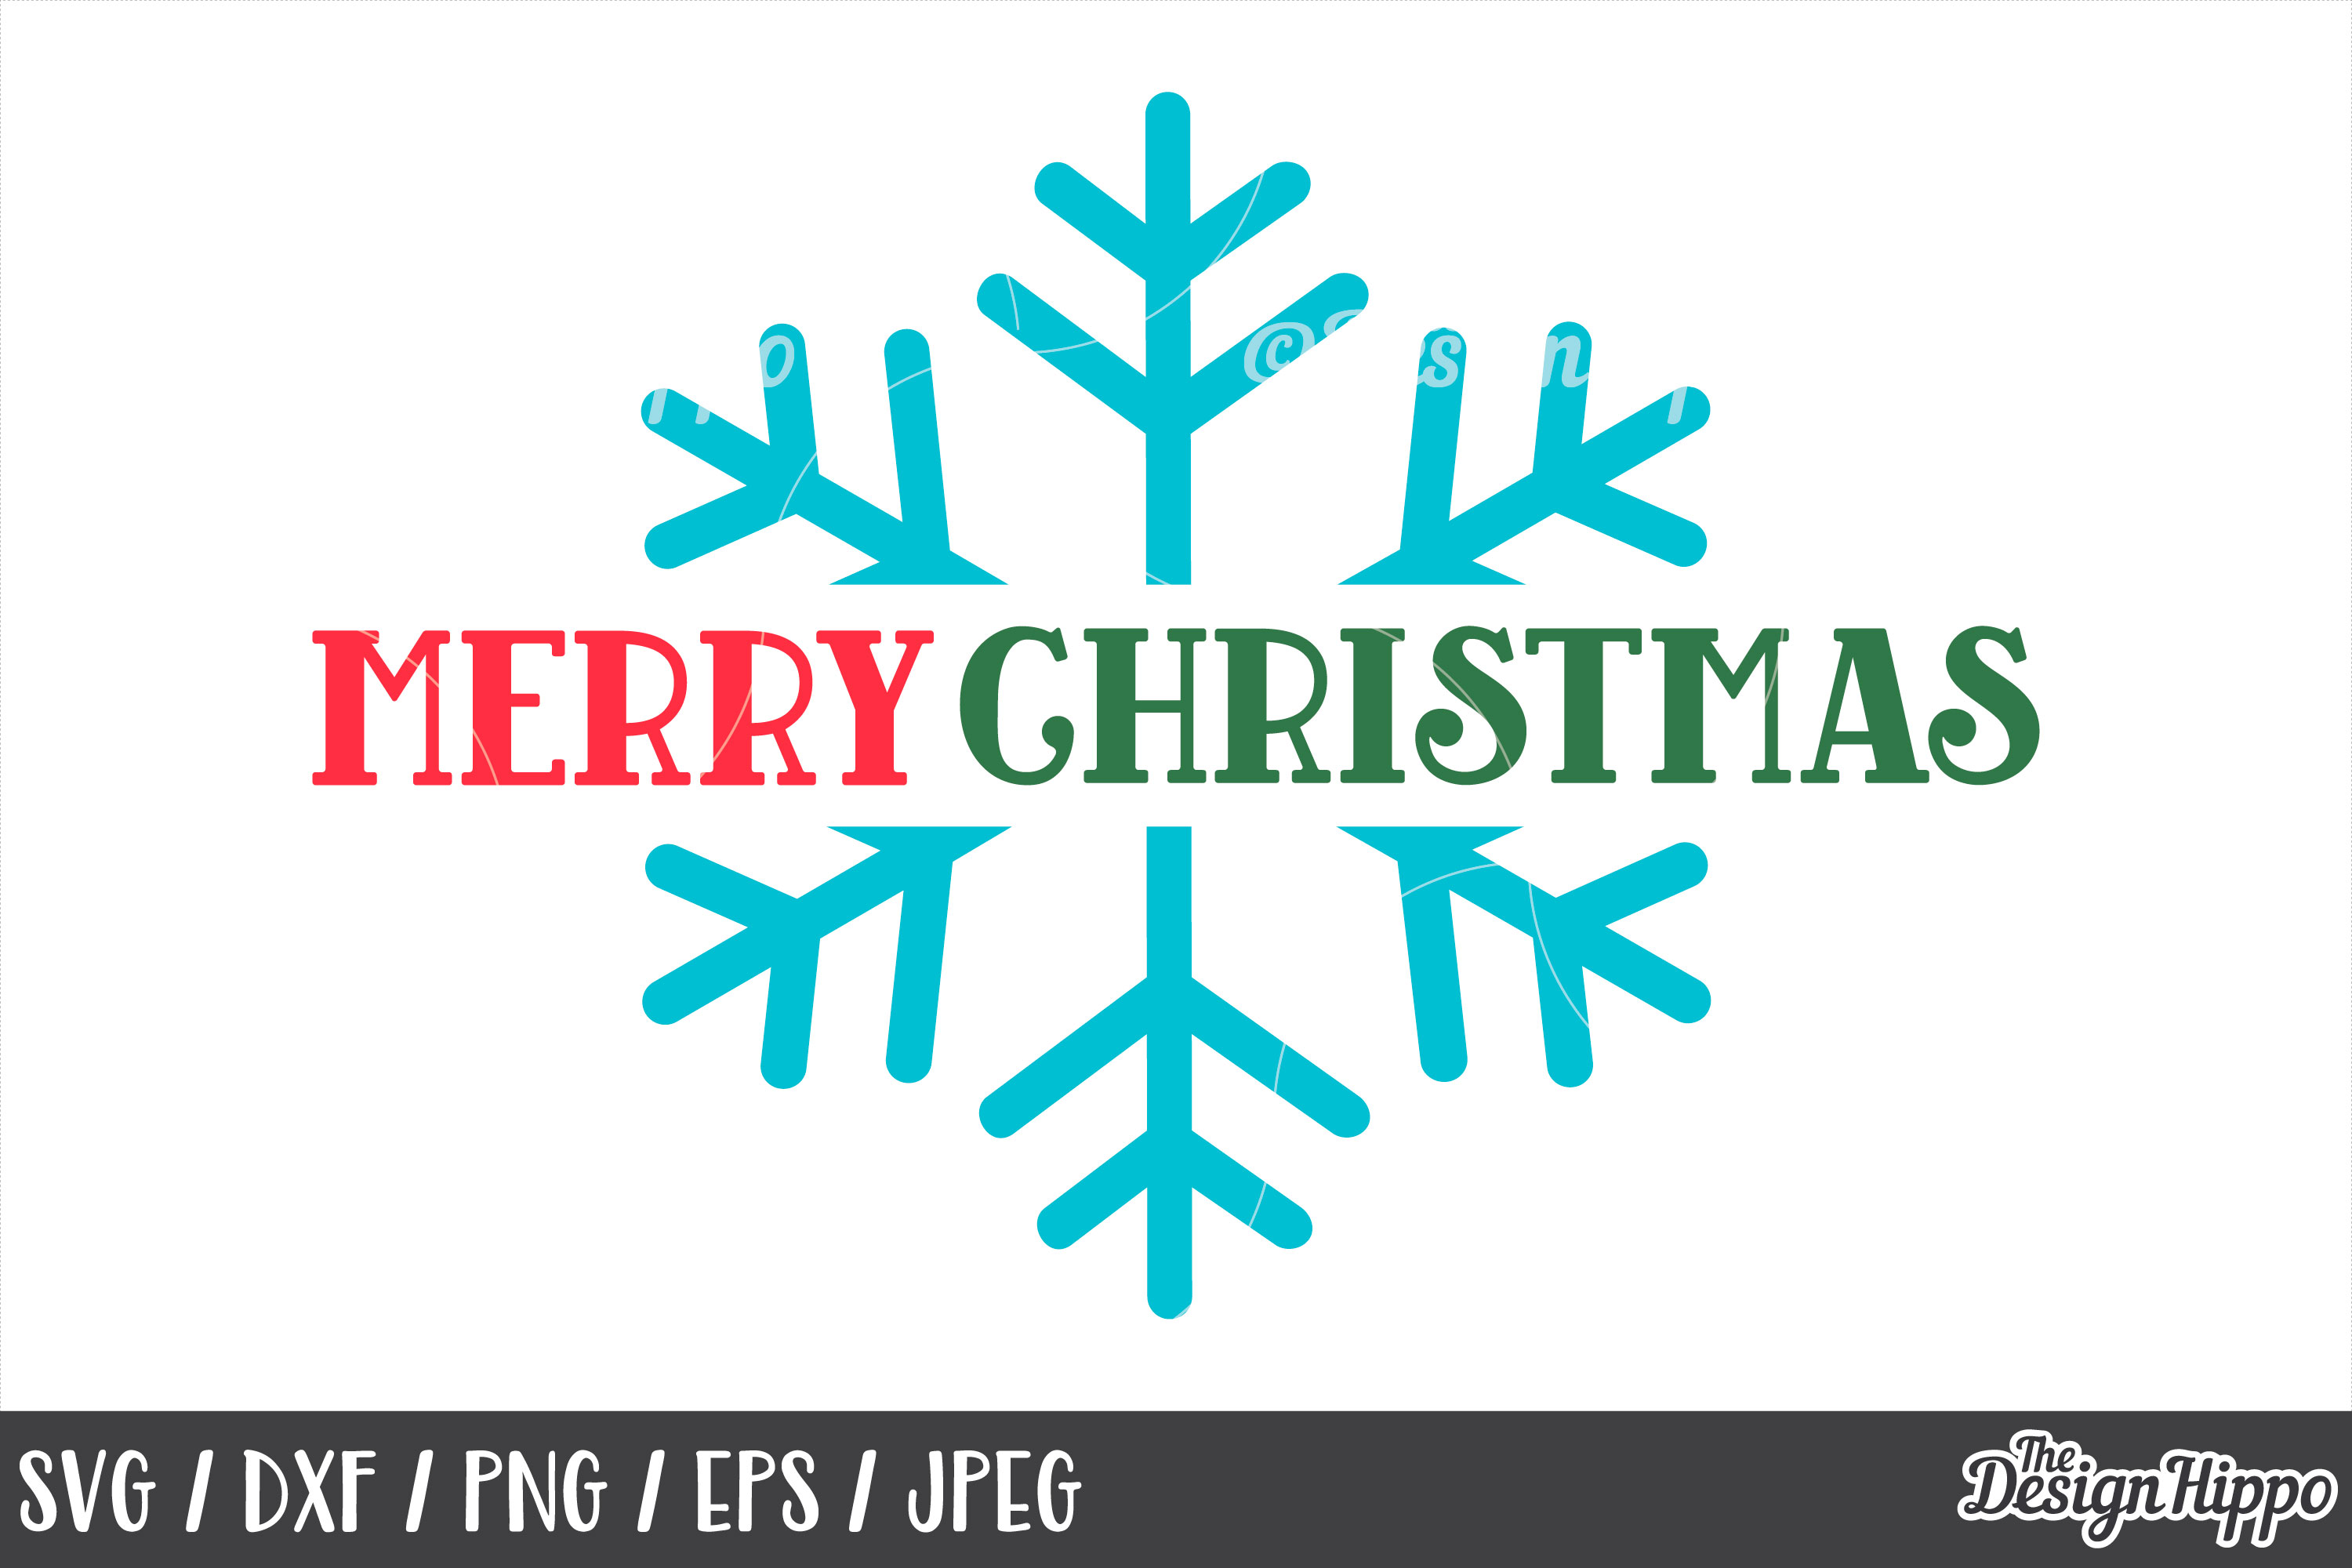 Merry Christmas SVG Bundle, Christmas SVG, PNG, DXF Cut File example image 10